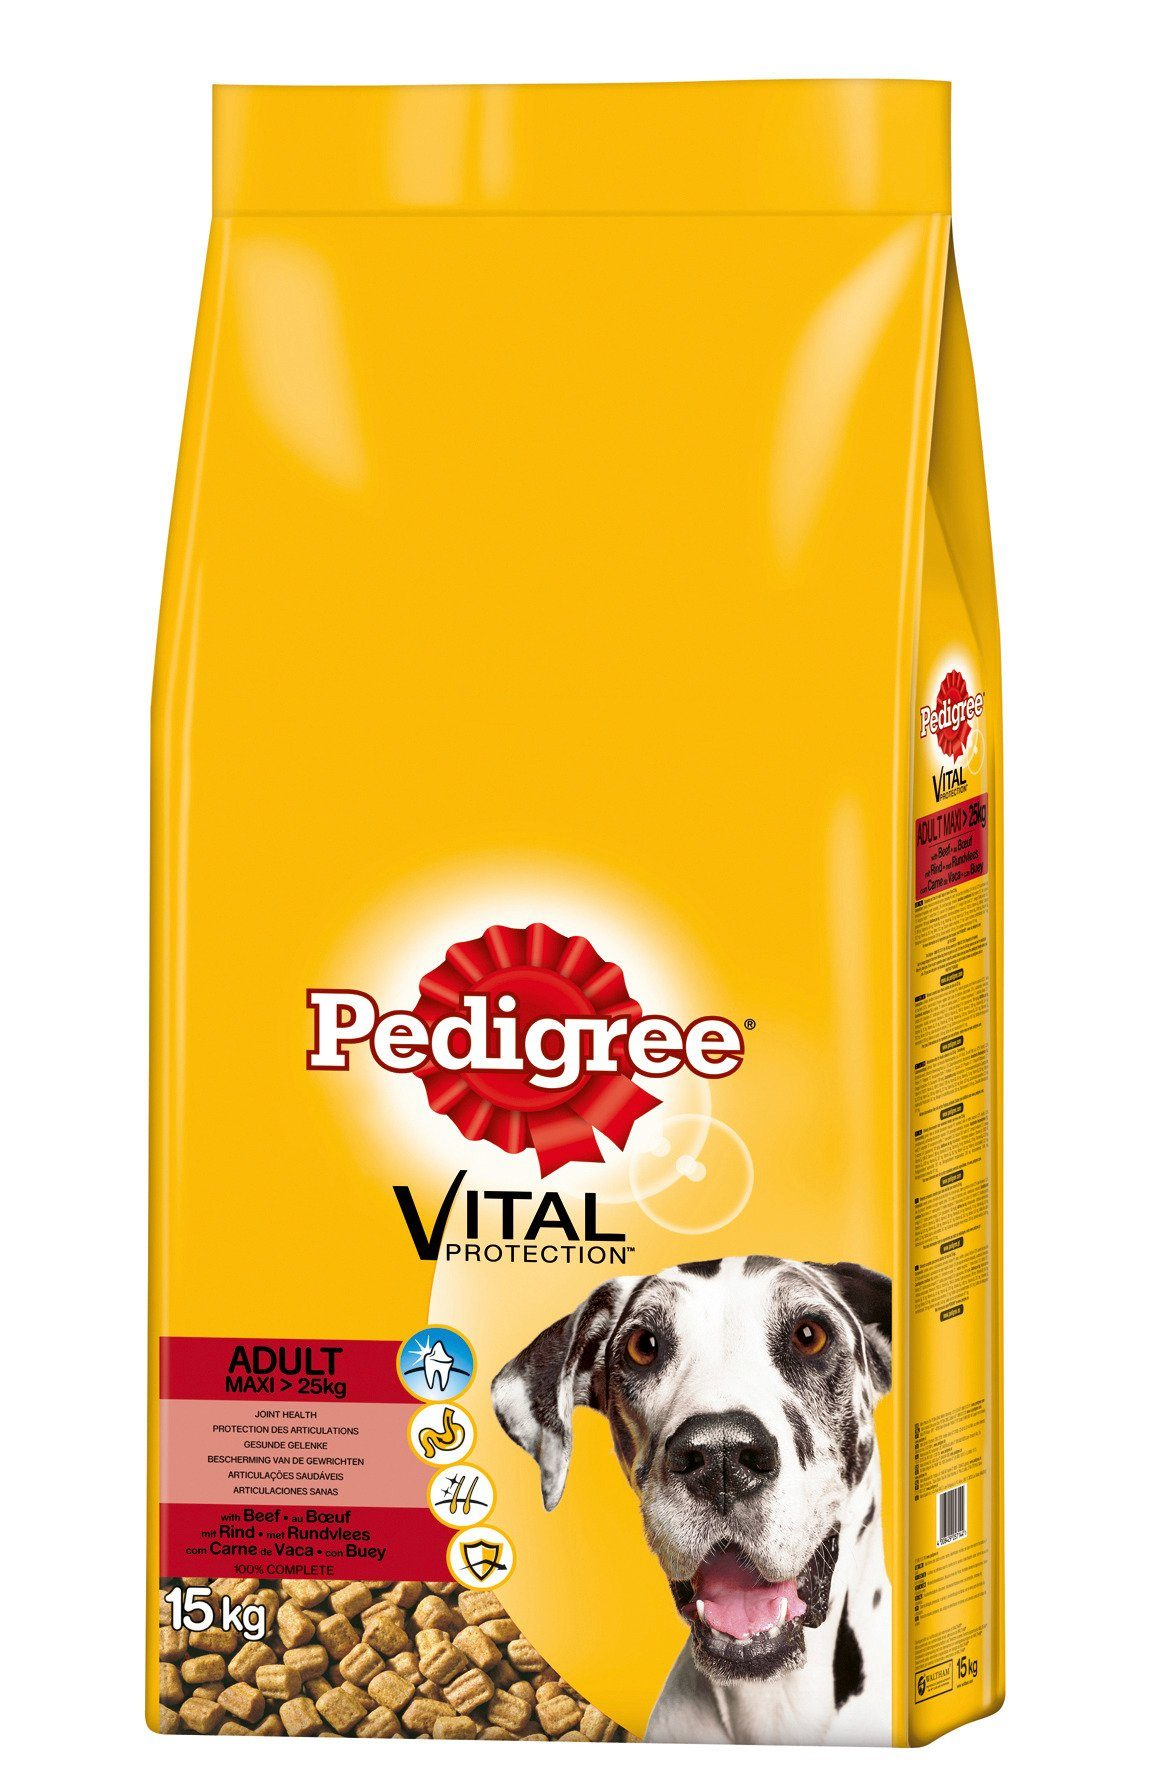 Pedigree Hundetrockenfutter »Vital Protection Adult Maxi«, 15 kg